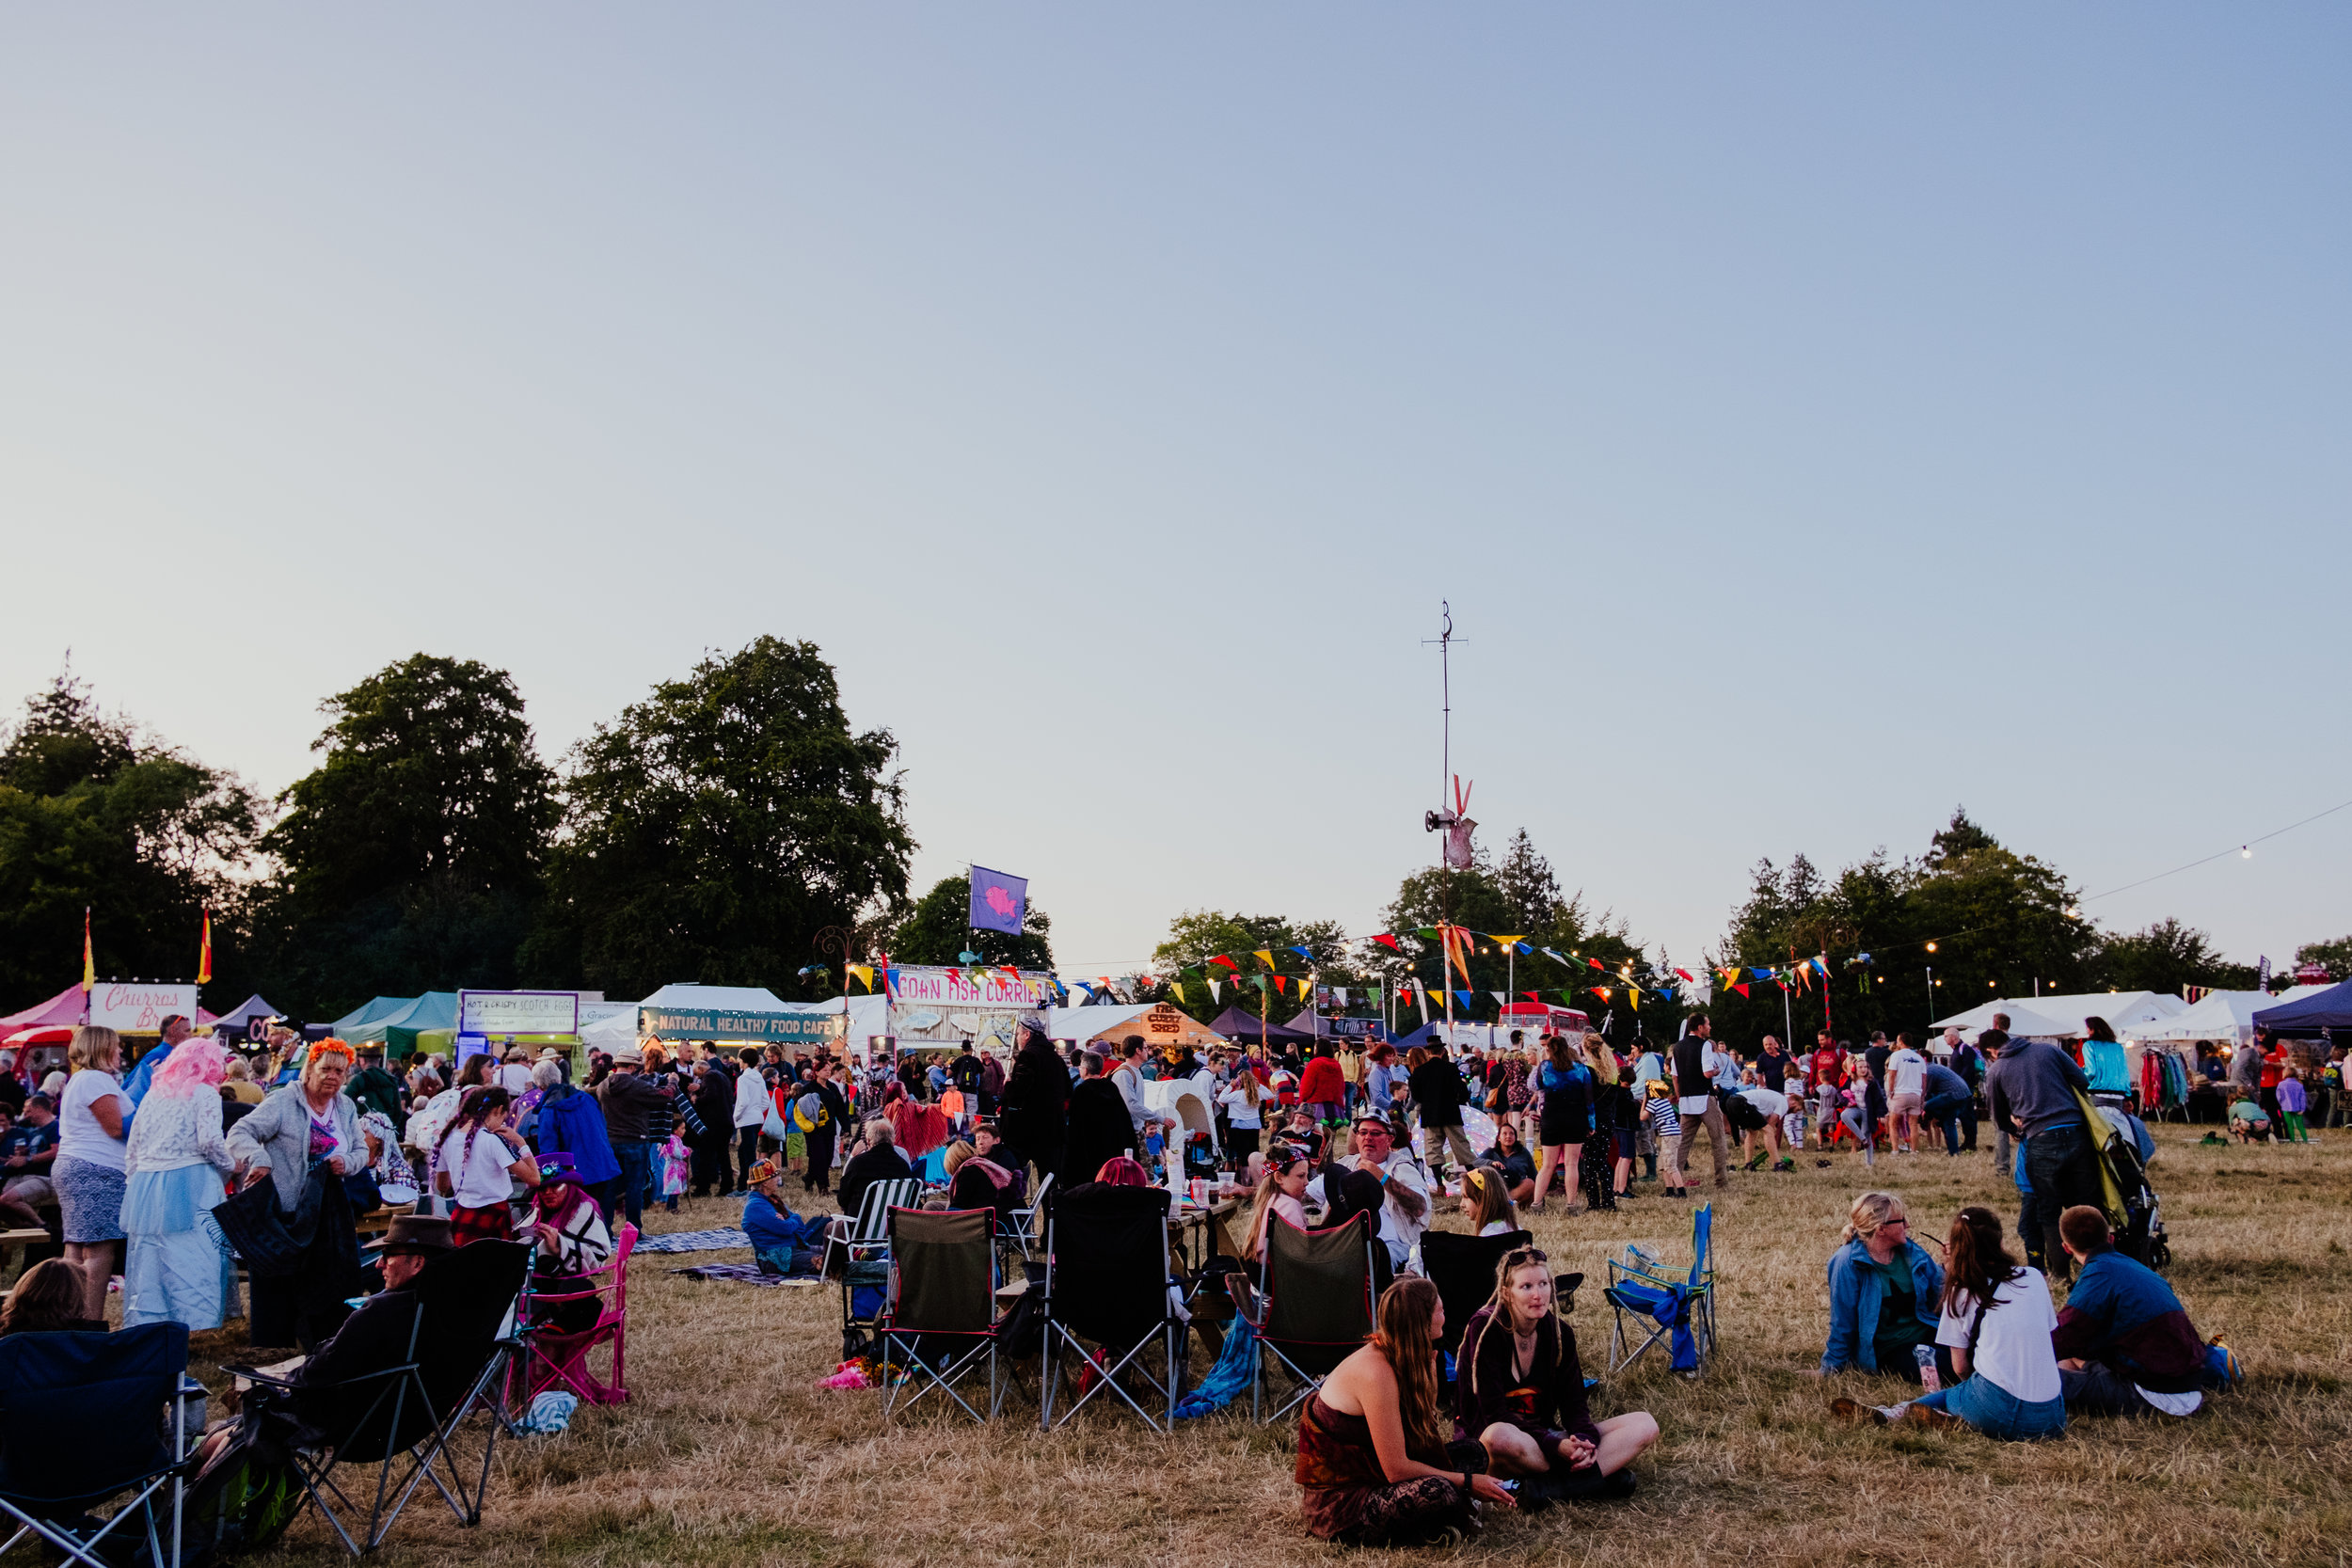 Larmer Tree Festival 2019 at sunset